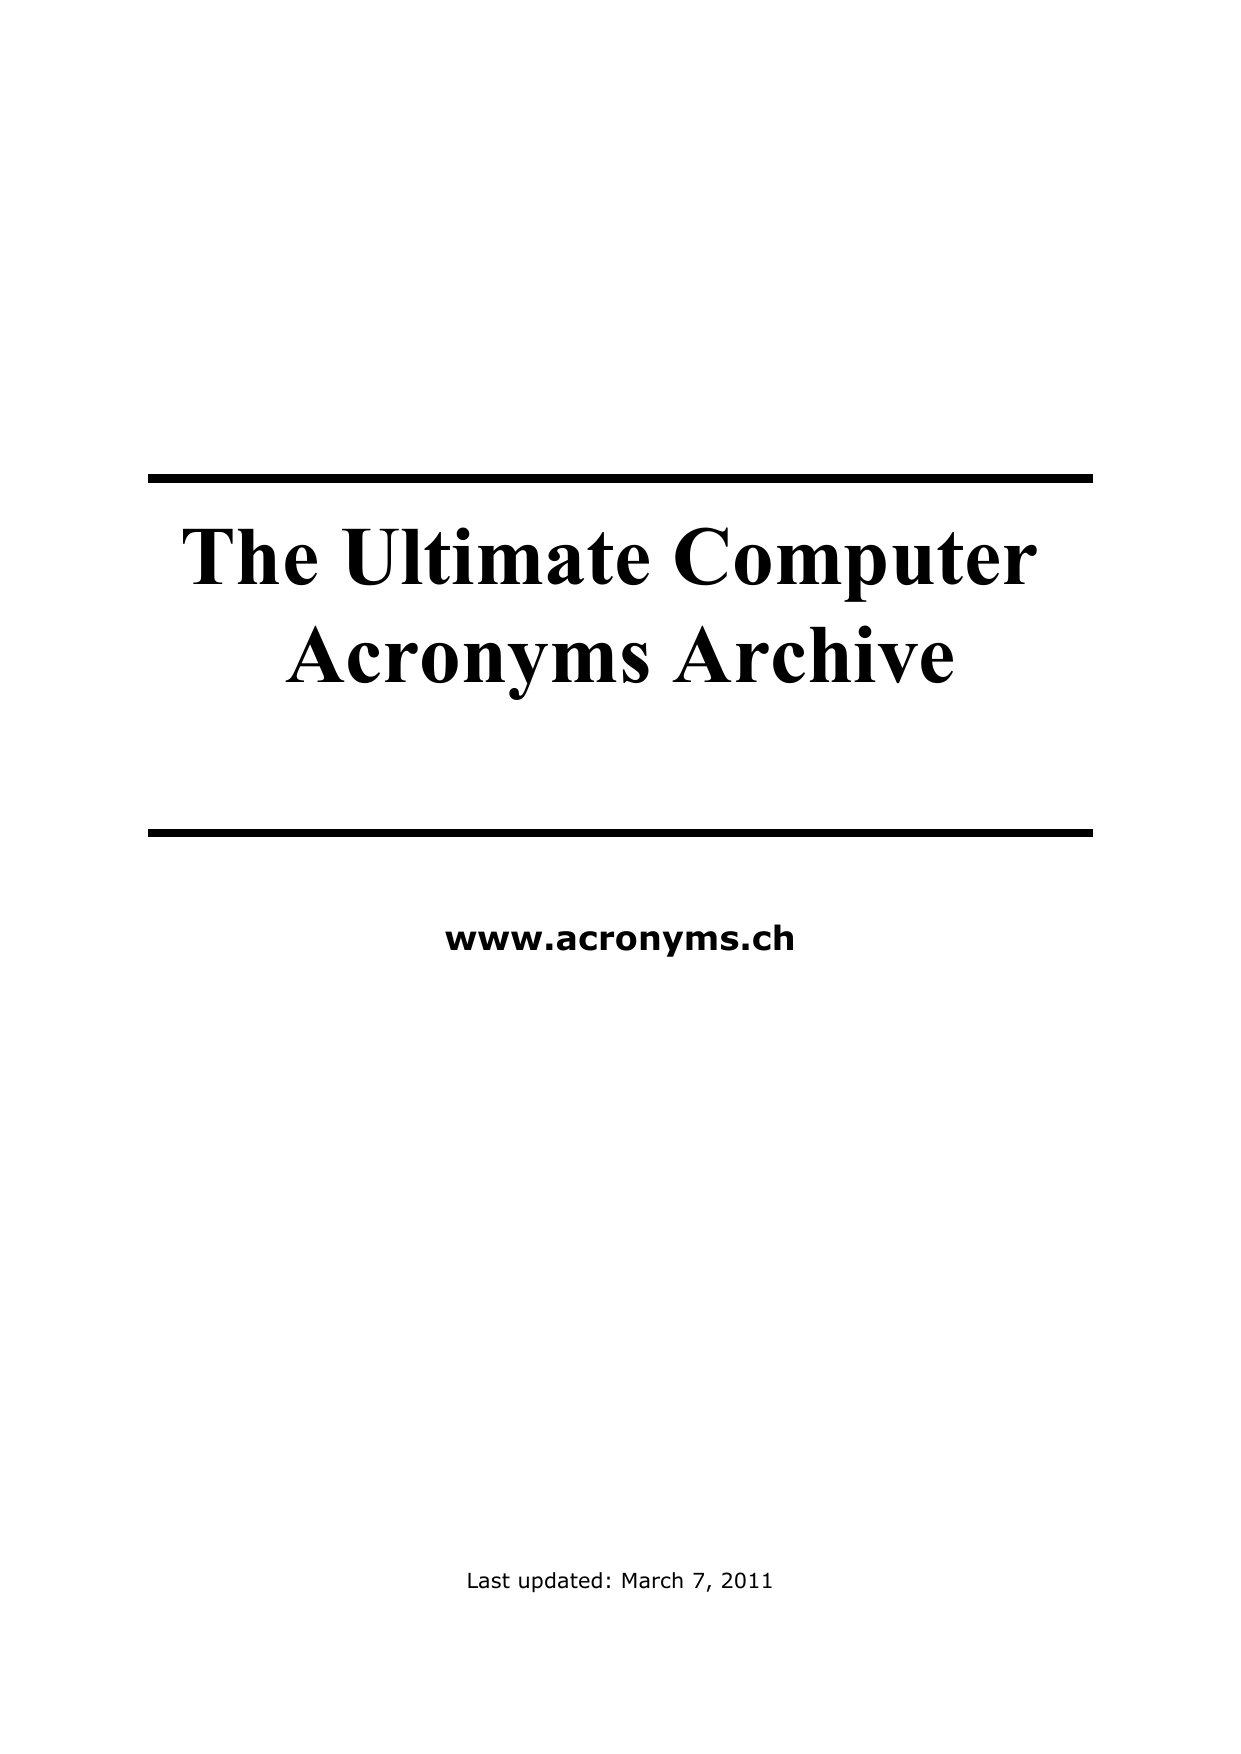 Incredible The Ultimate Computer Acronyms Archive Manualzz Com Wiring Cloud Overrenstrafr09Org